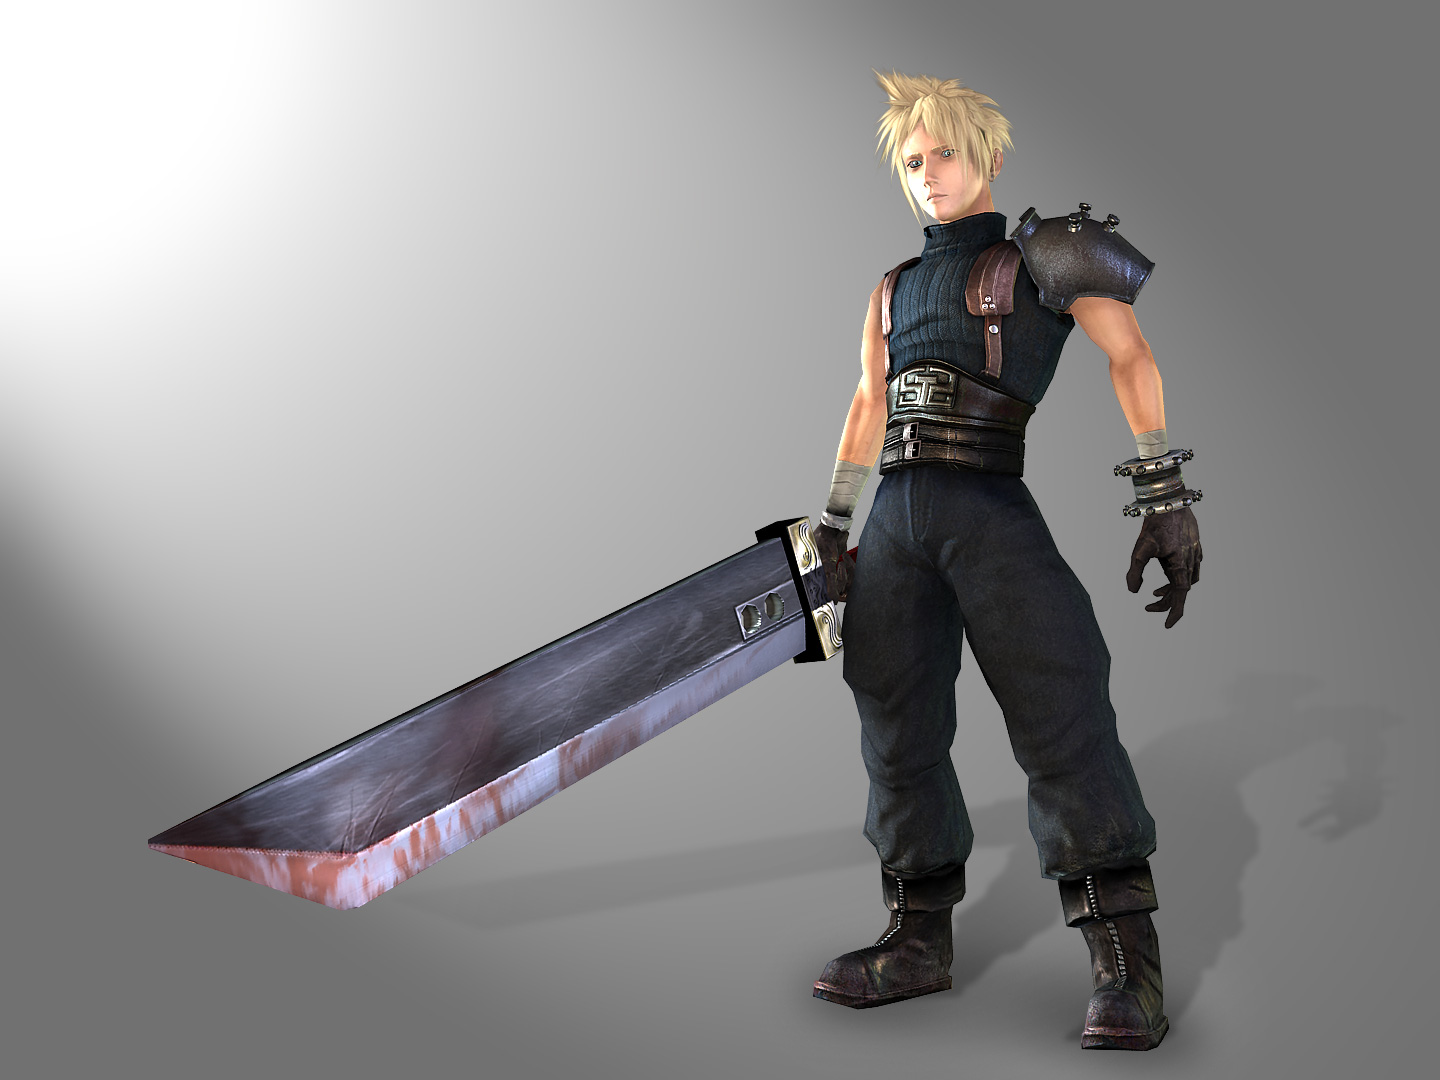 Cloud FF7 REMAKE by genci on DeviantArt